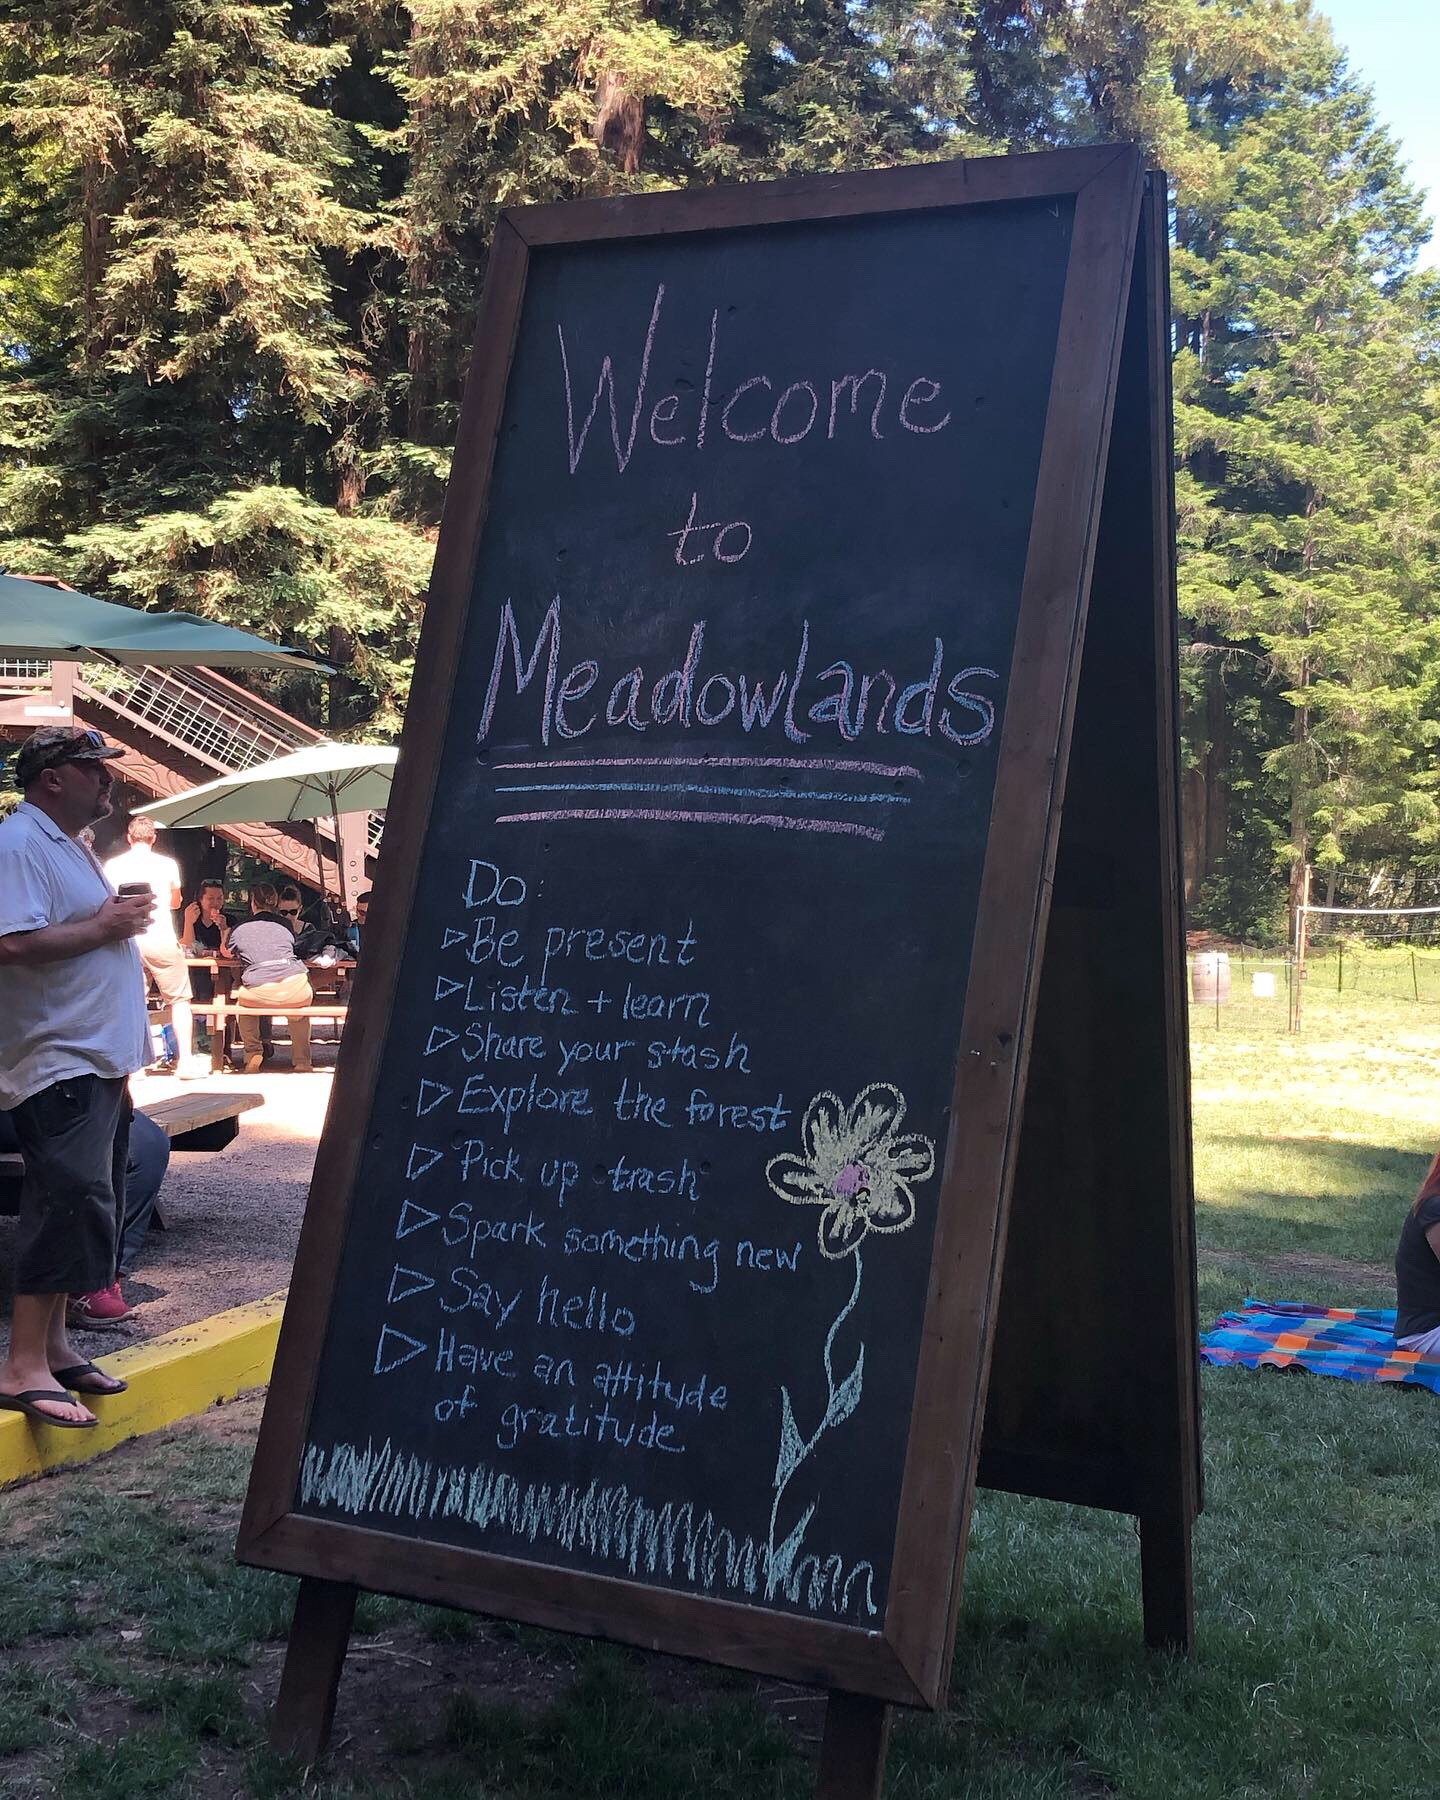 Meadowlands 2019 - Camp Navarro, Mendocino County, CA